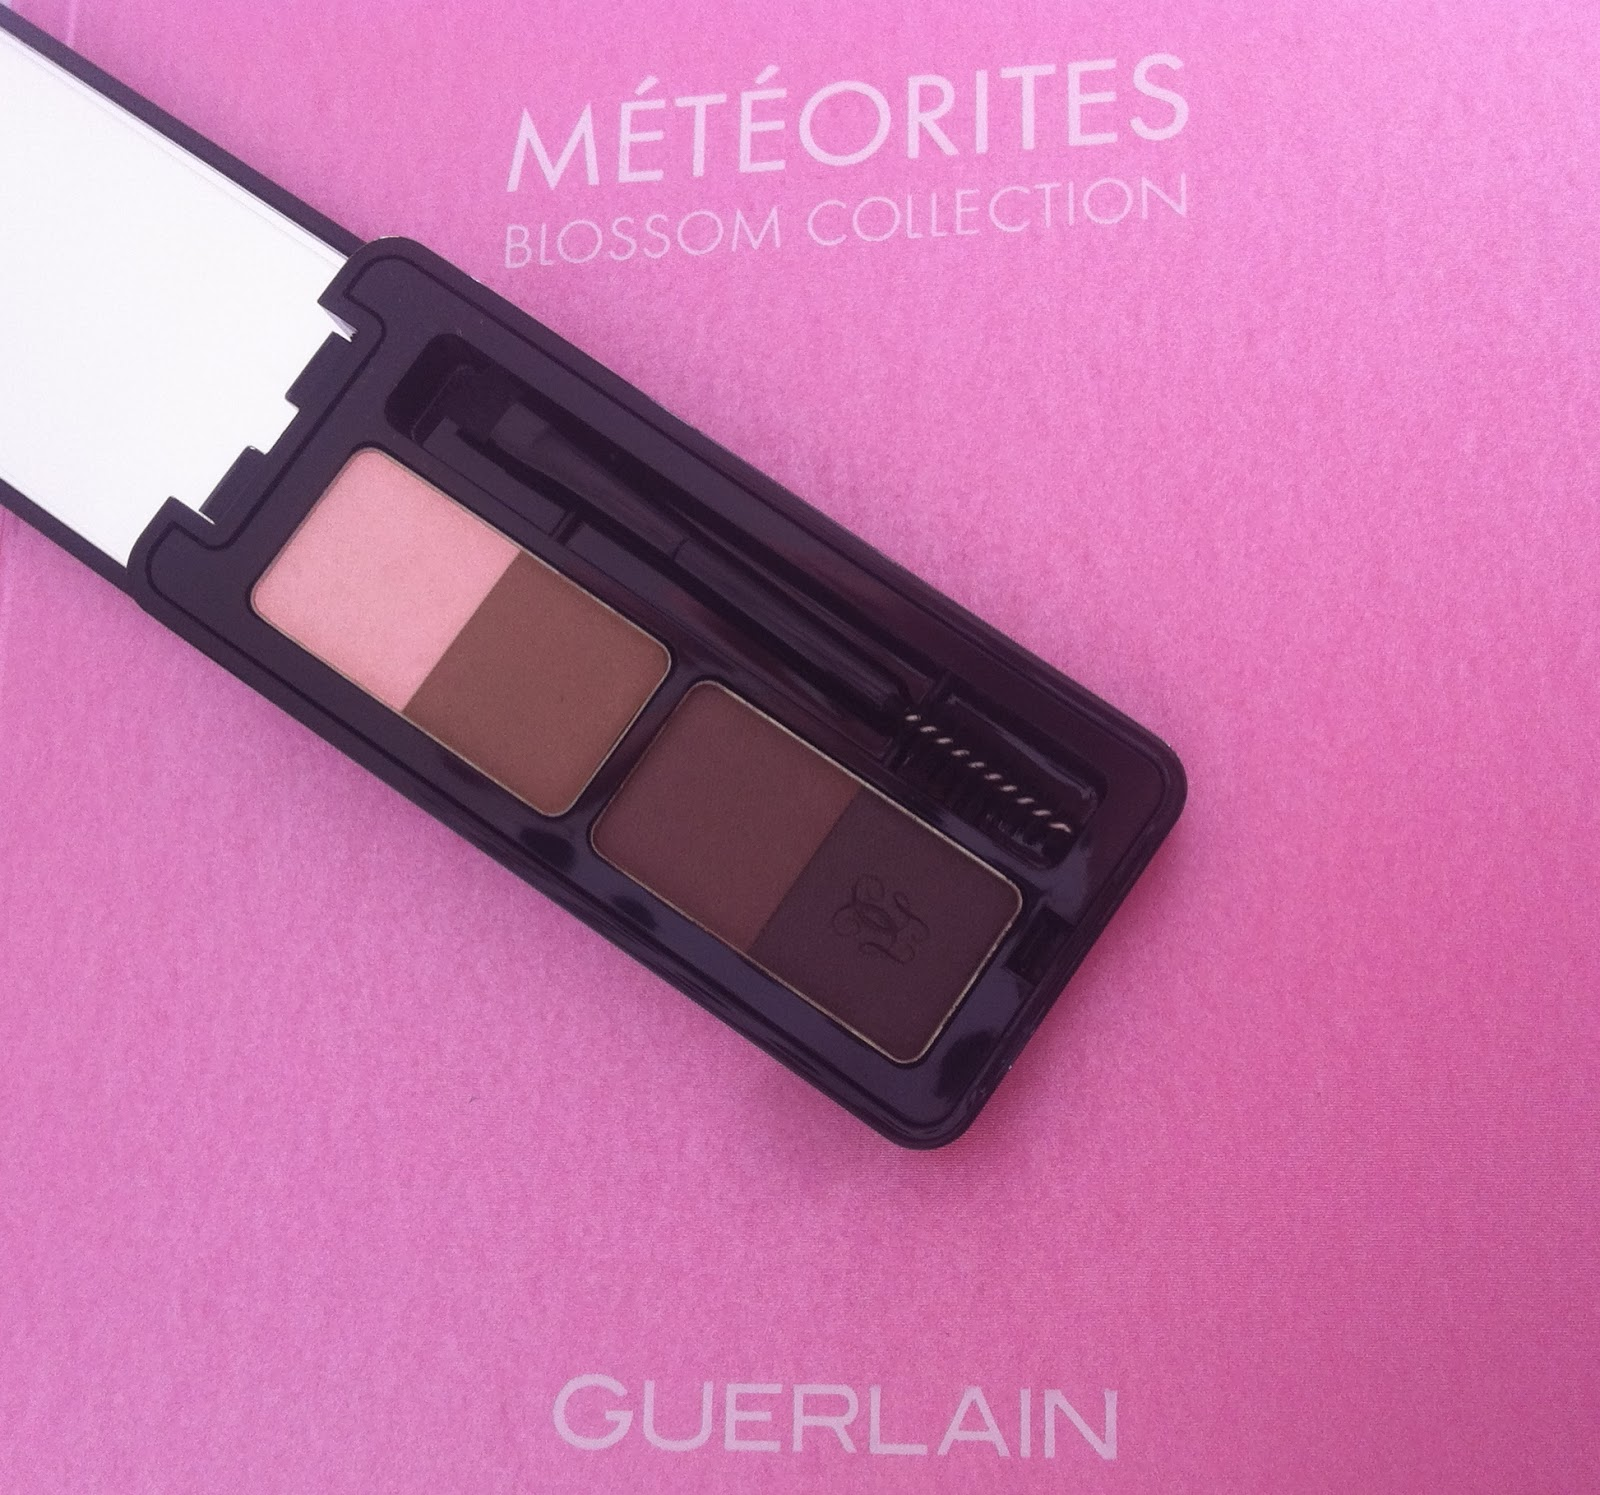 Guerlain make up spring 2014 Météorites Blossom Collection, L'Ecrin sourcils universel